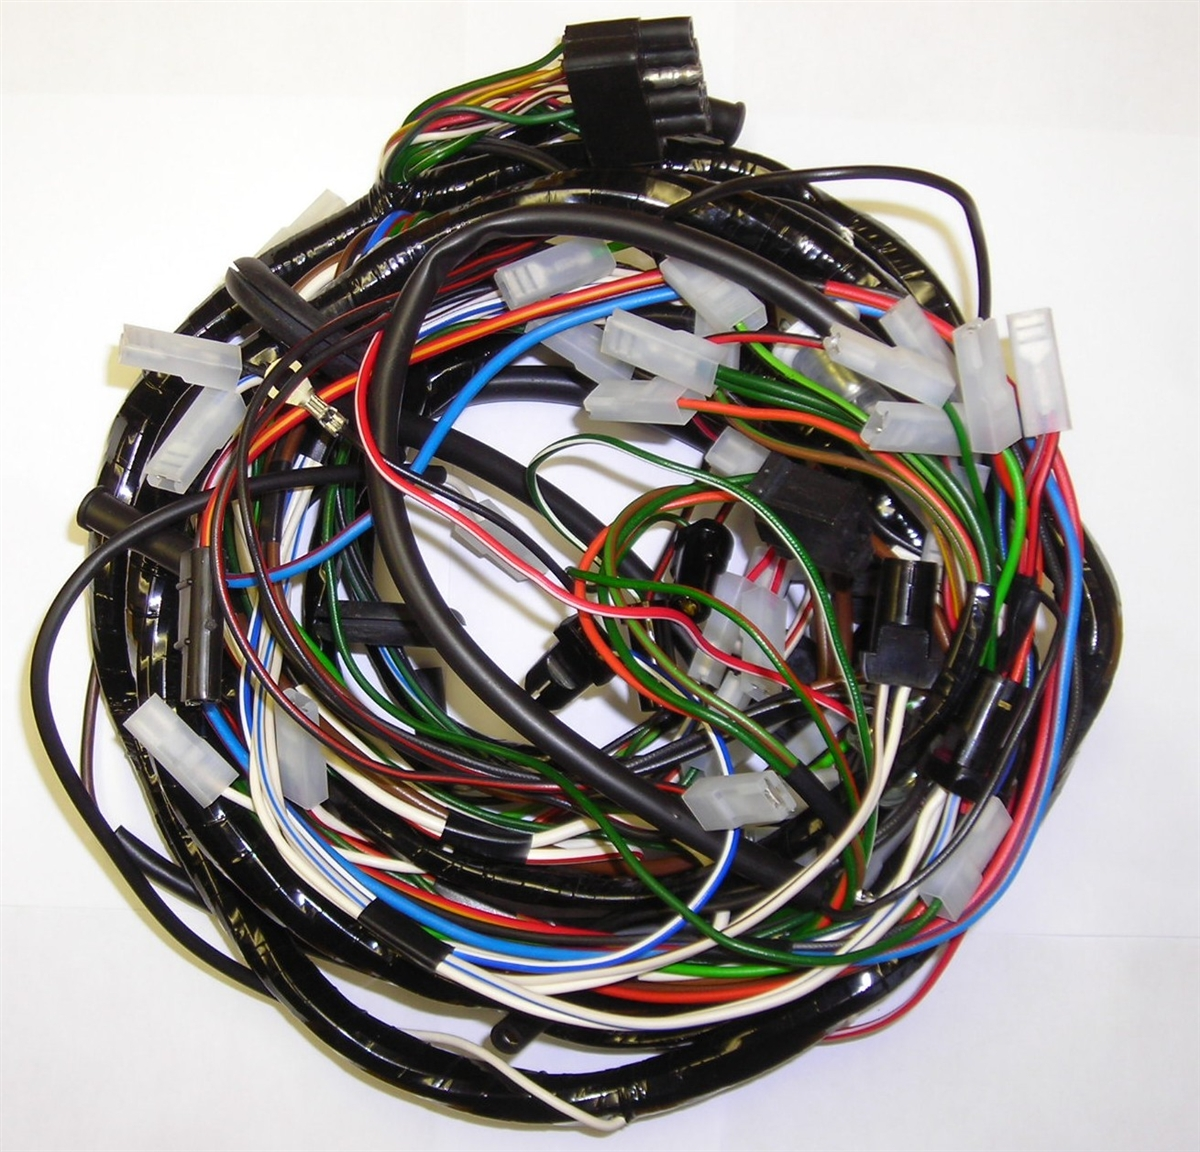 land rover series 3 main wiring harness land rover series 3 wiring harness for sale series 3 land rover wiring harness [ 1200 x 1152 Pixel ]